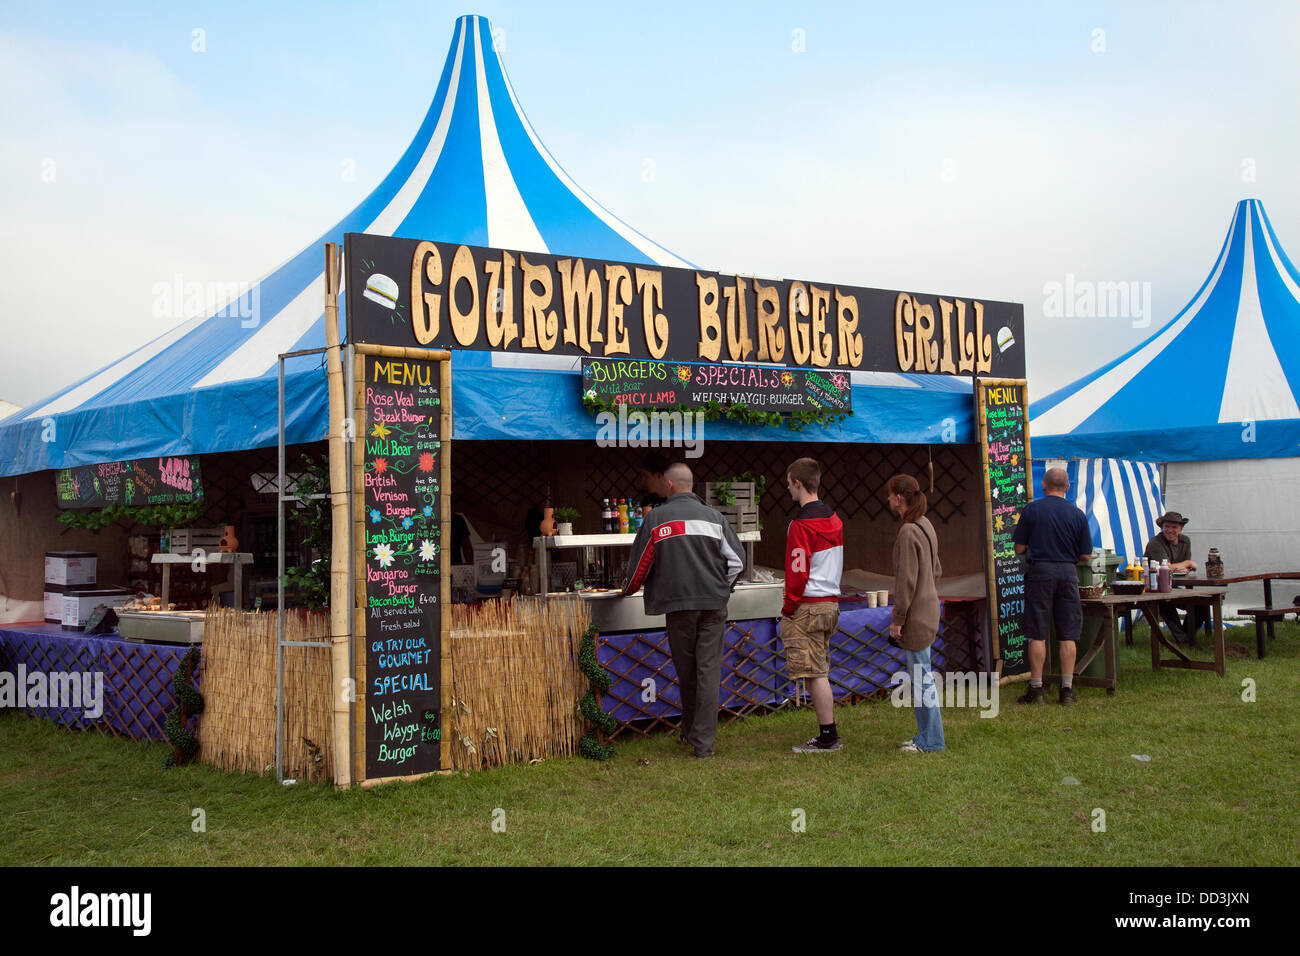 Cheshire Game & Country Fair, UK,  Aug 24 to Aug 26, 2013.  Catering at the 6th Tabley Cheshire Game & Country - Stock Image